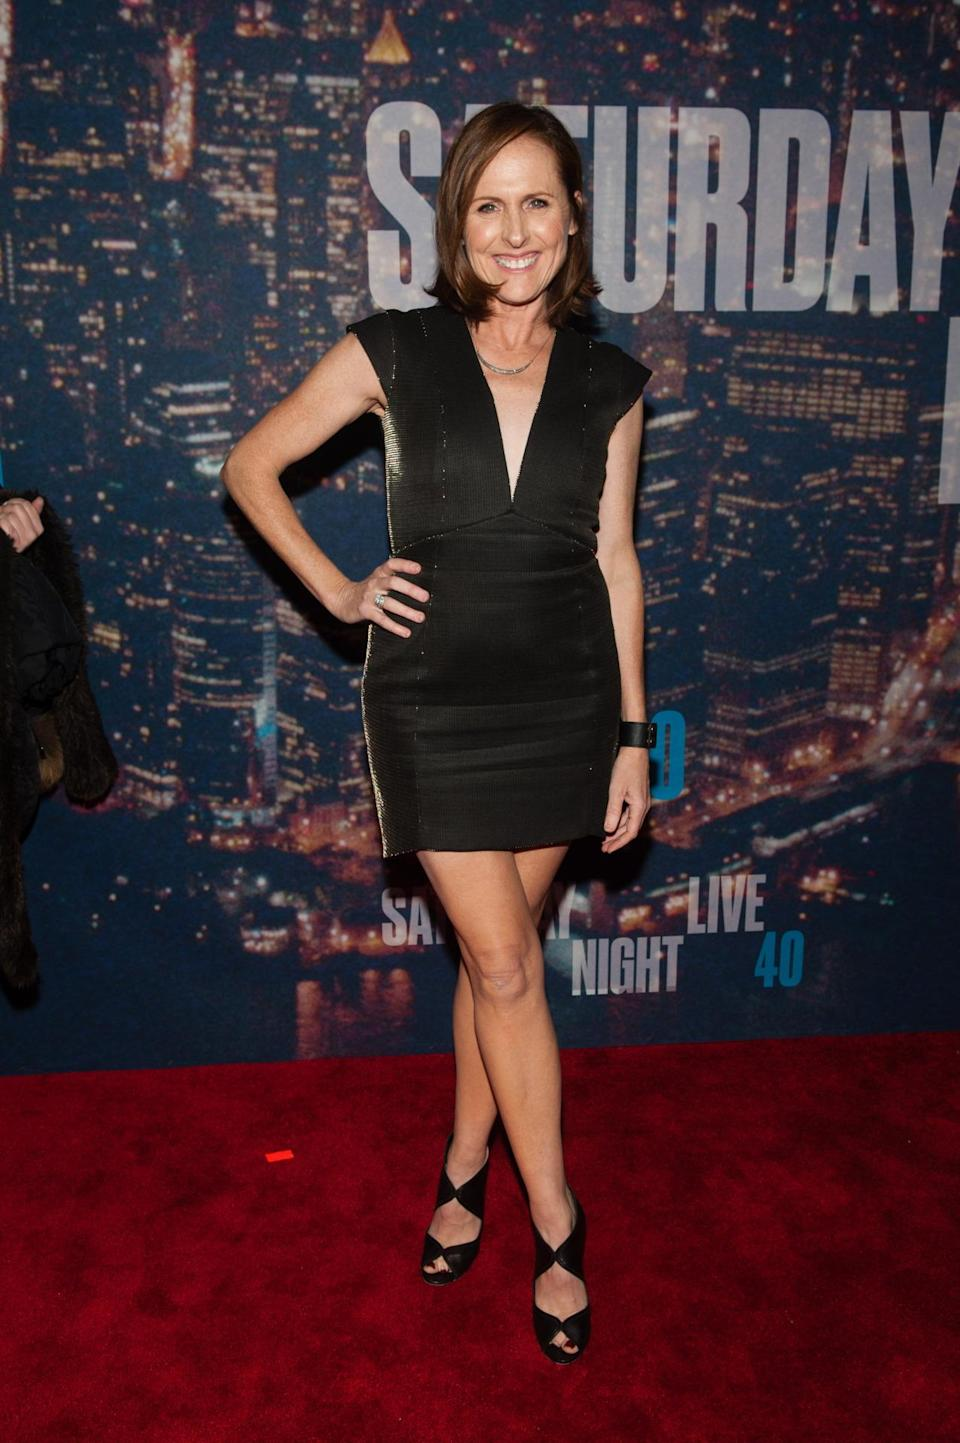 Before changing into a school girl uniform and transforming into Mary Katherine Gallagher, Molly Shannon showed up in a LBD — something her character would never be caught wearing but the 50-year-old (!) actress looked amazing in.